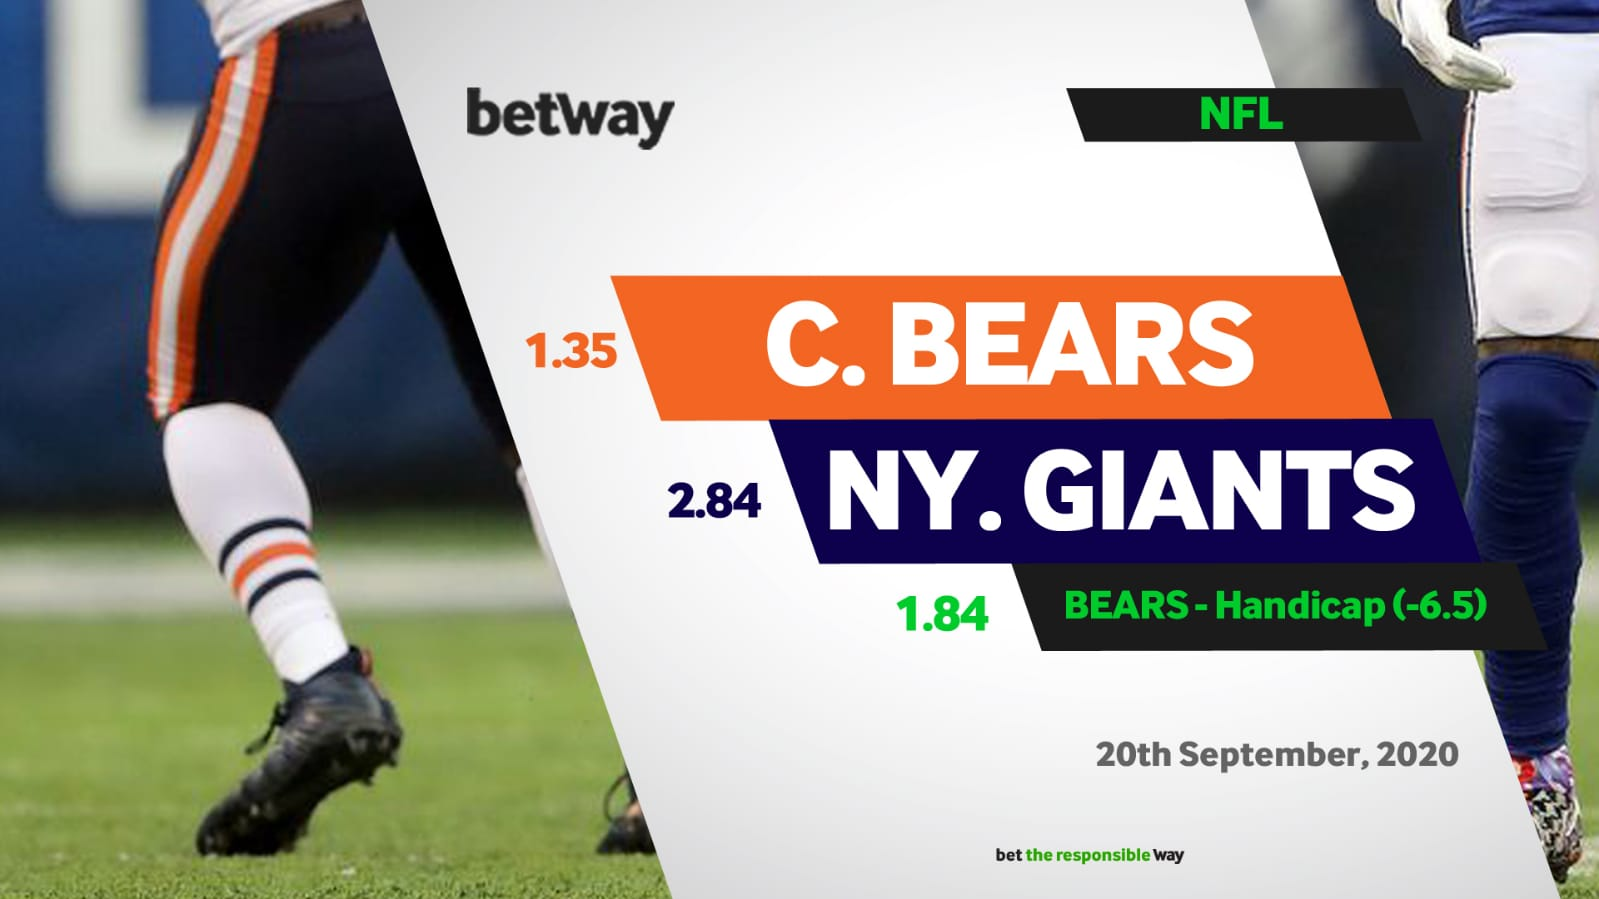 NFL preview: Back Bears in a low scoring game